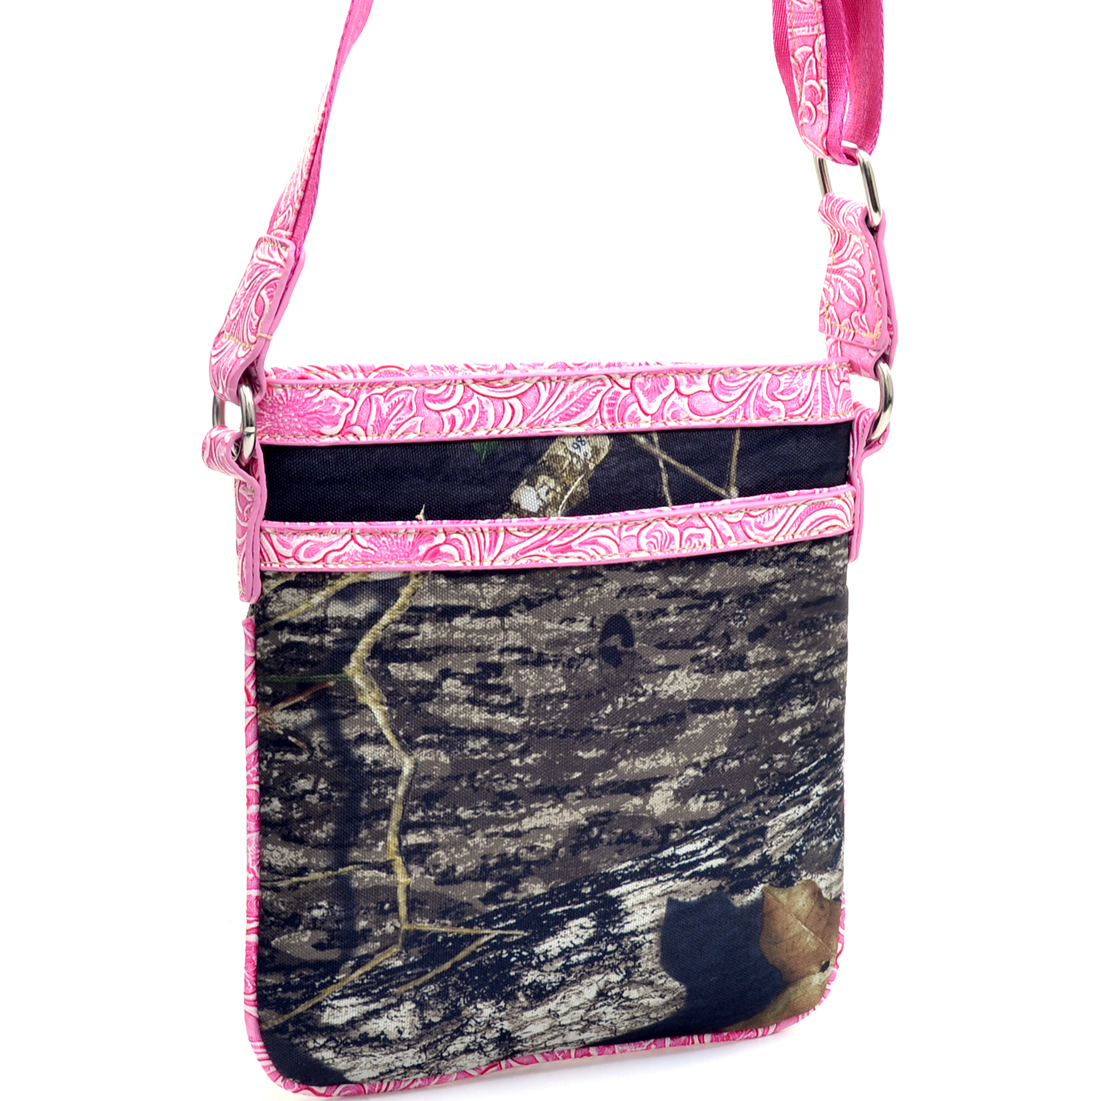 Mossy Oak ® Faux Leather Trim Amouflage Shoulder Bag w/ Flapover Top Snap Closure